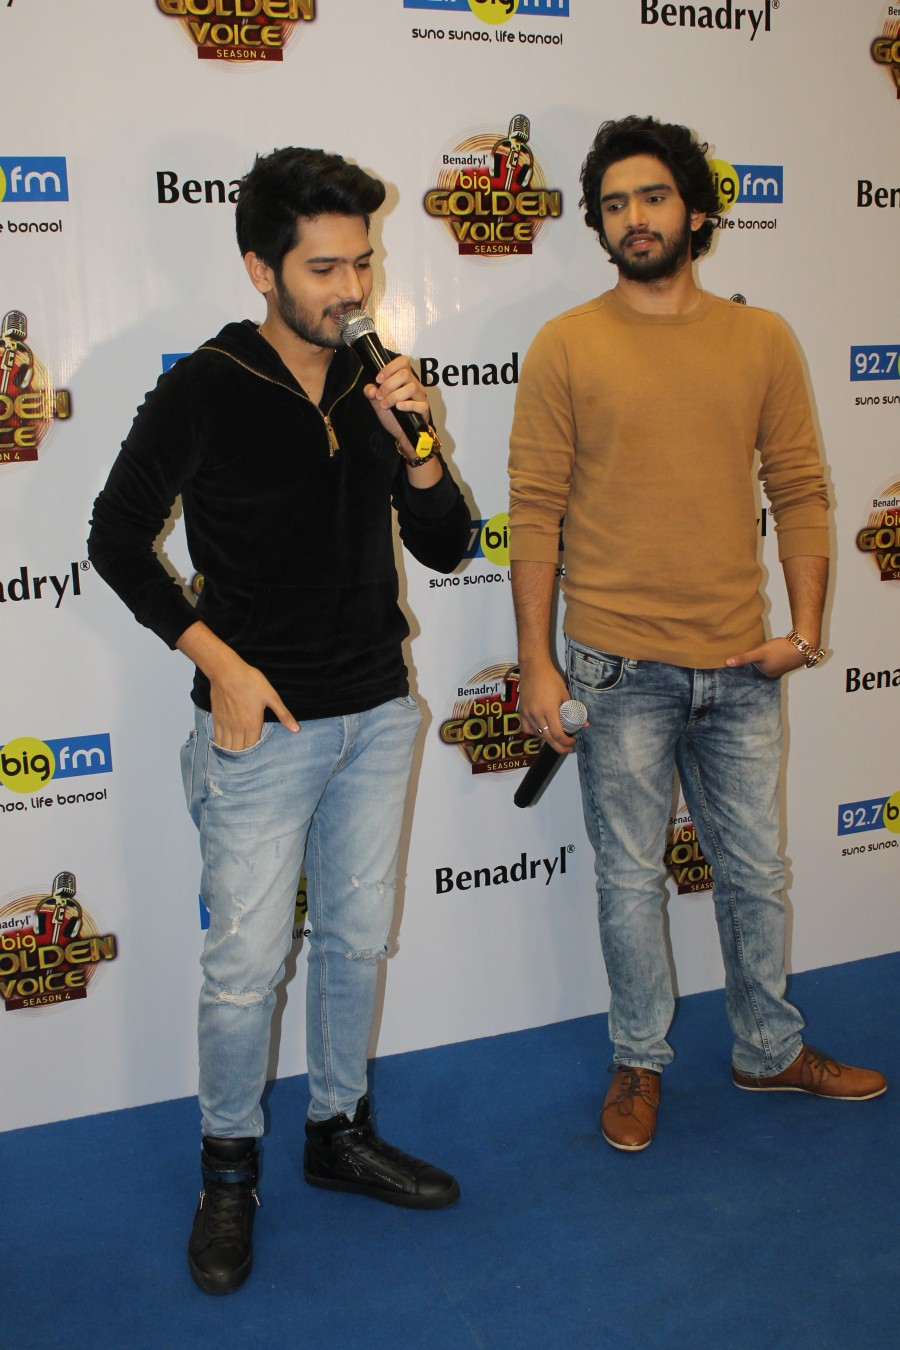 92.7 BIG FM,Benadryl Launch,Benadryl Launch Season 4,Benadryl BIG Golden Voice,Malik Brothers,Armaan,Amaal Malik,Armaan Malik